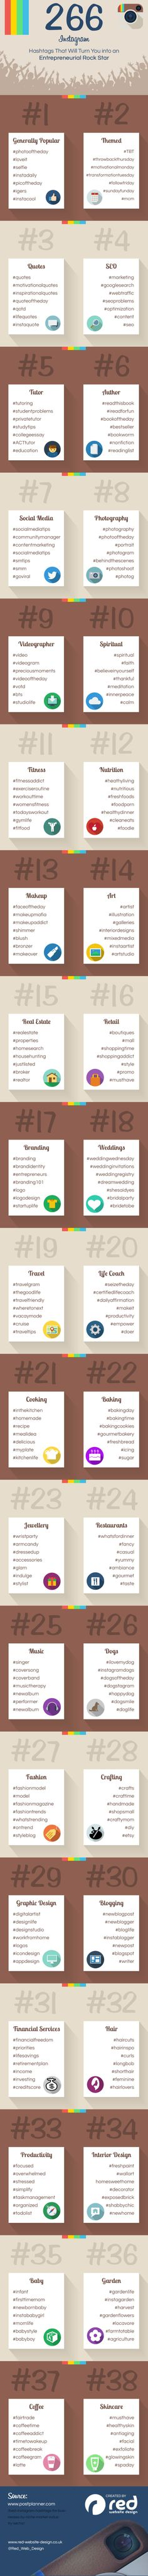 Hashtags to help you